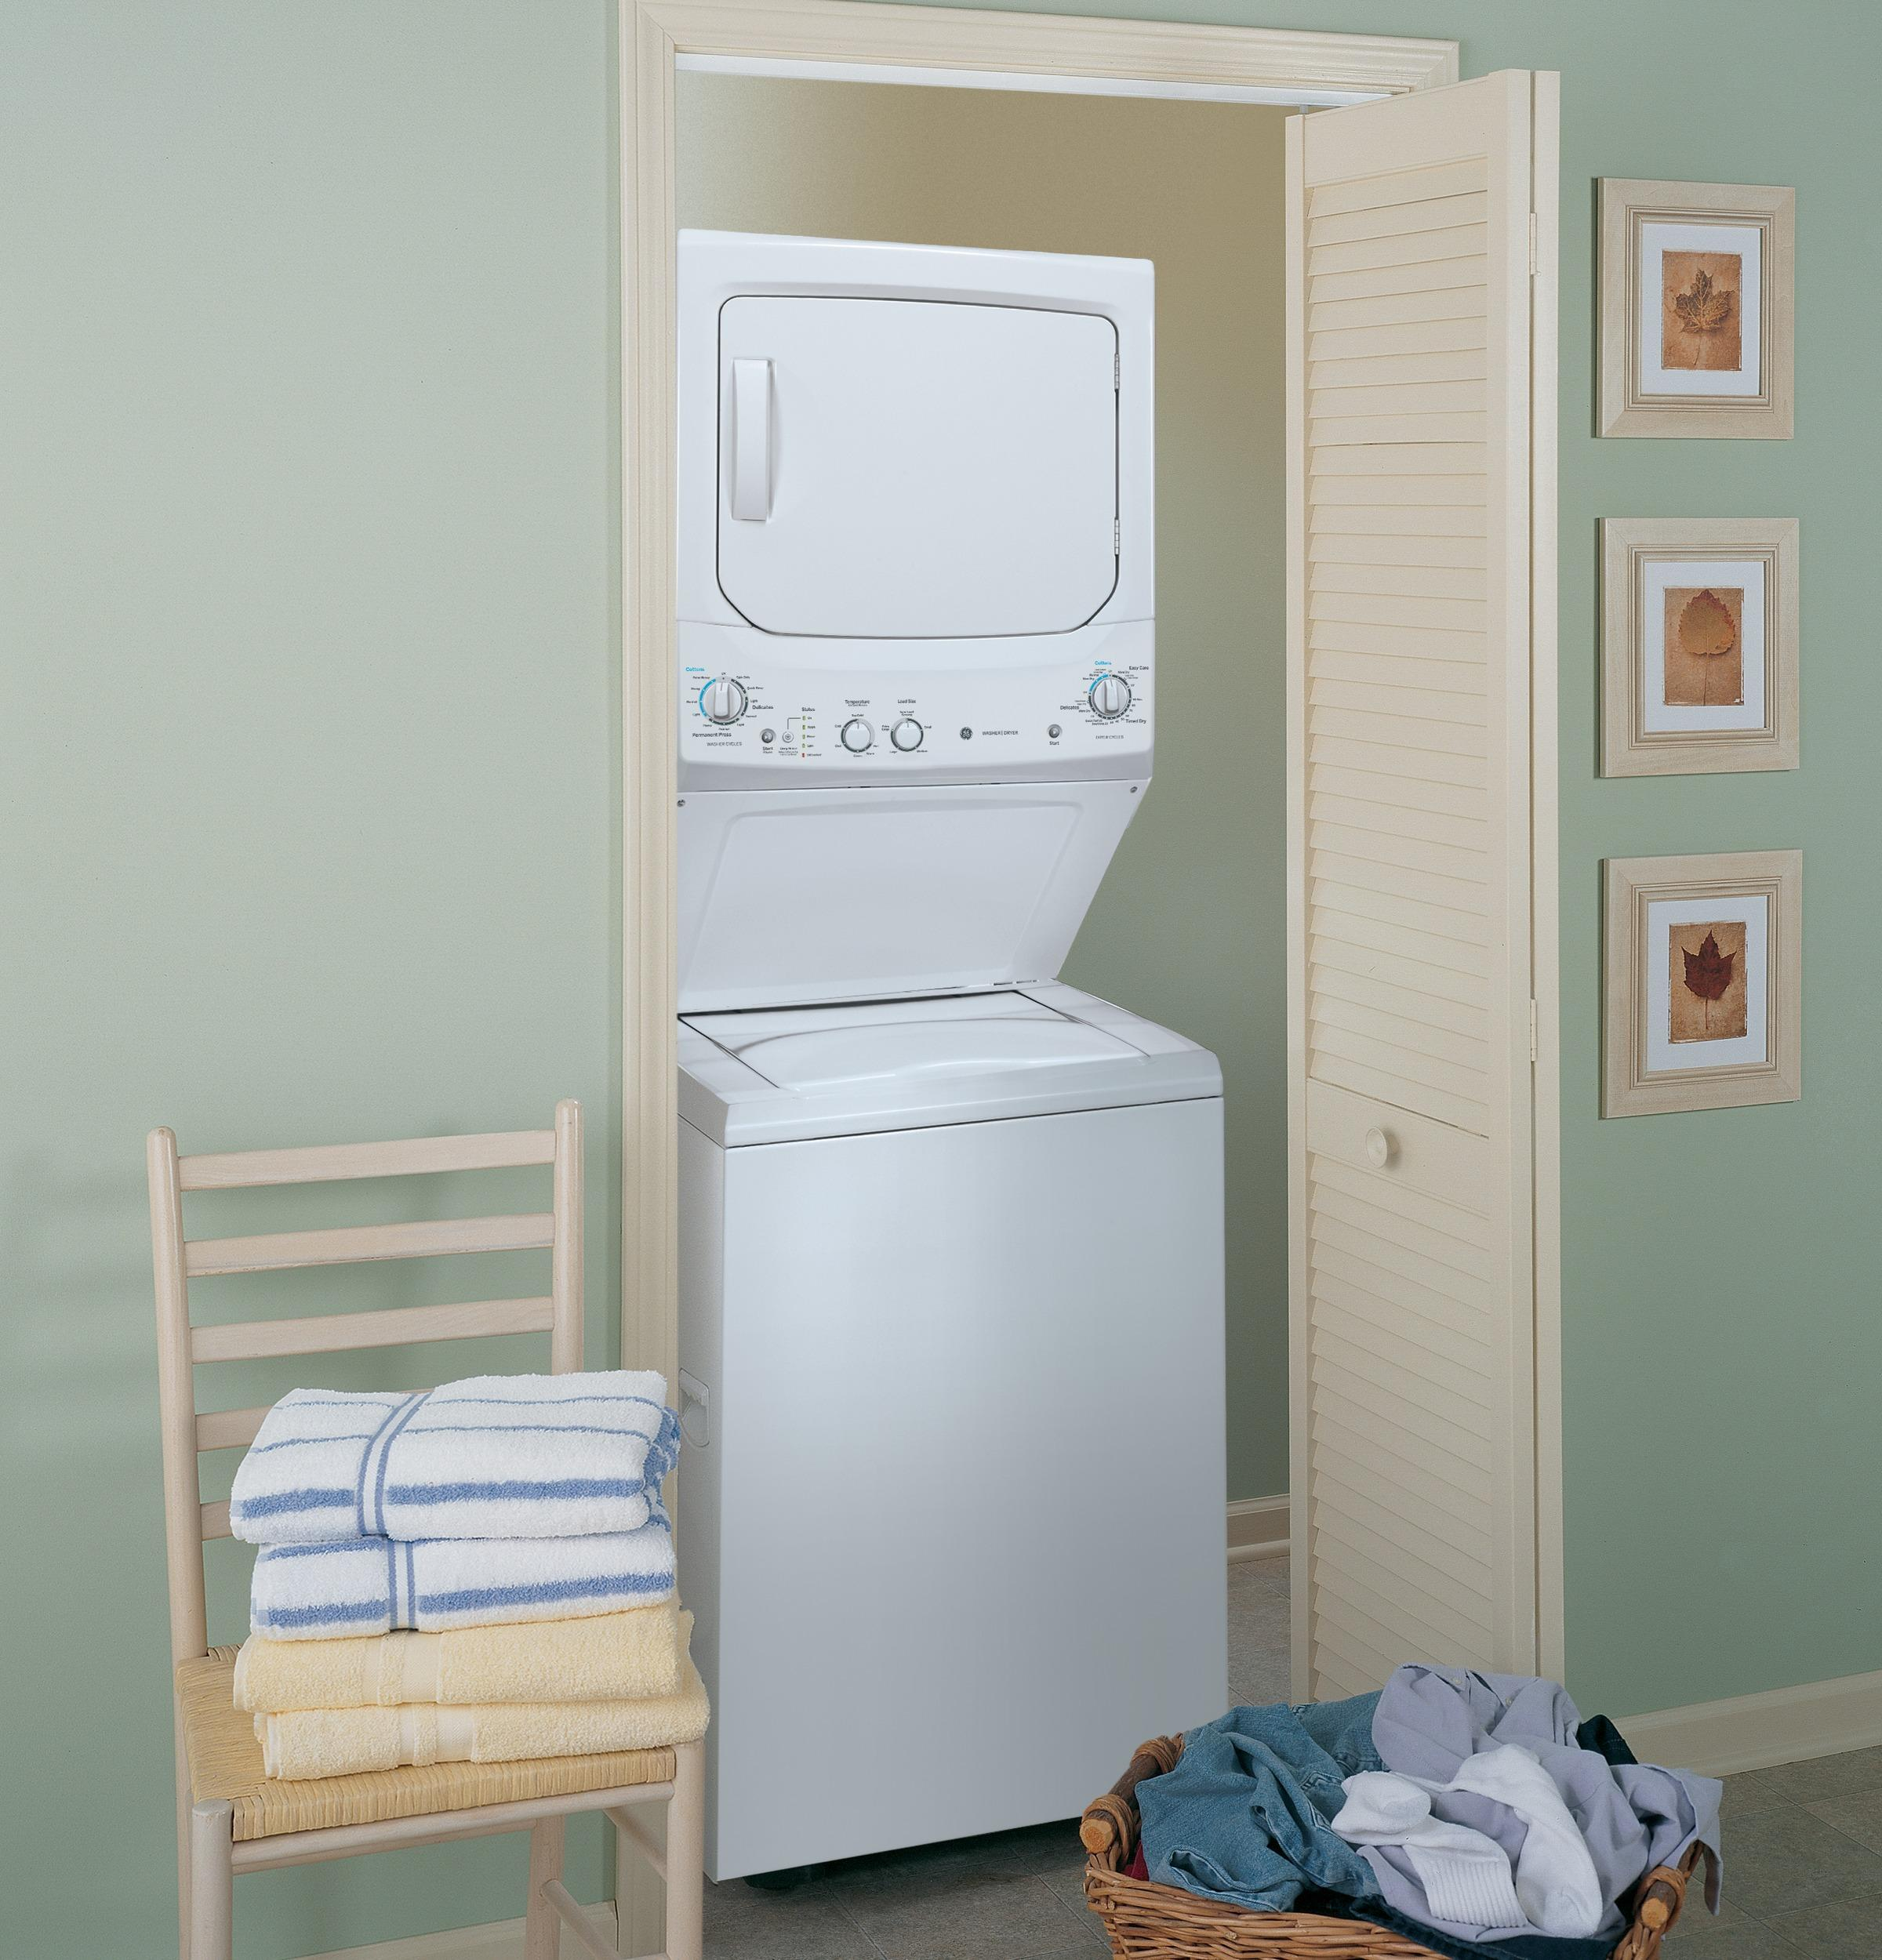 GE Unitized Spacemaker(R) 3.2 DOE cu. ft. Washer and 5.9 cu. ft. Gas Dryer  White on White